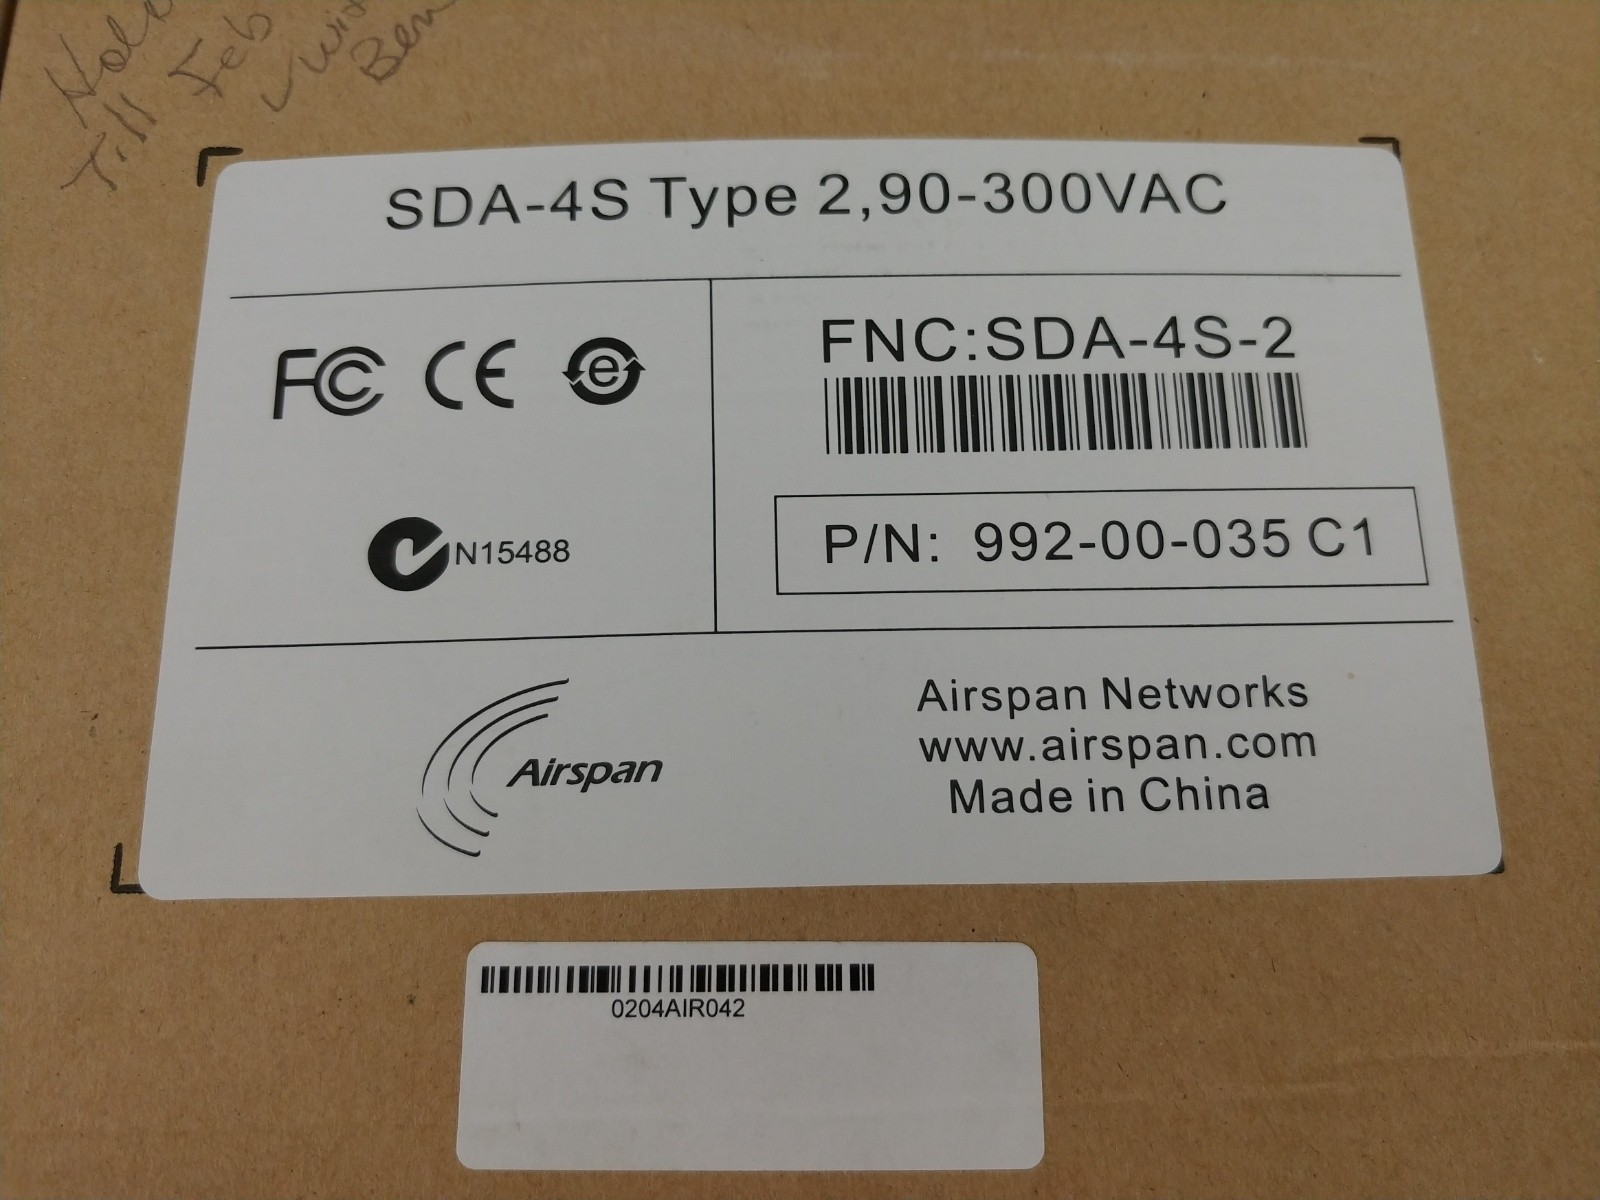 Airspan Networks SDA-4S Type 2 992-00-035 C1